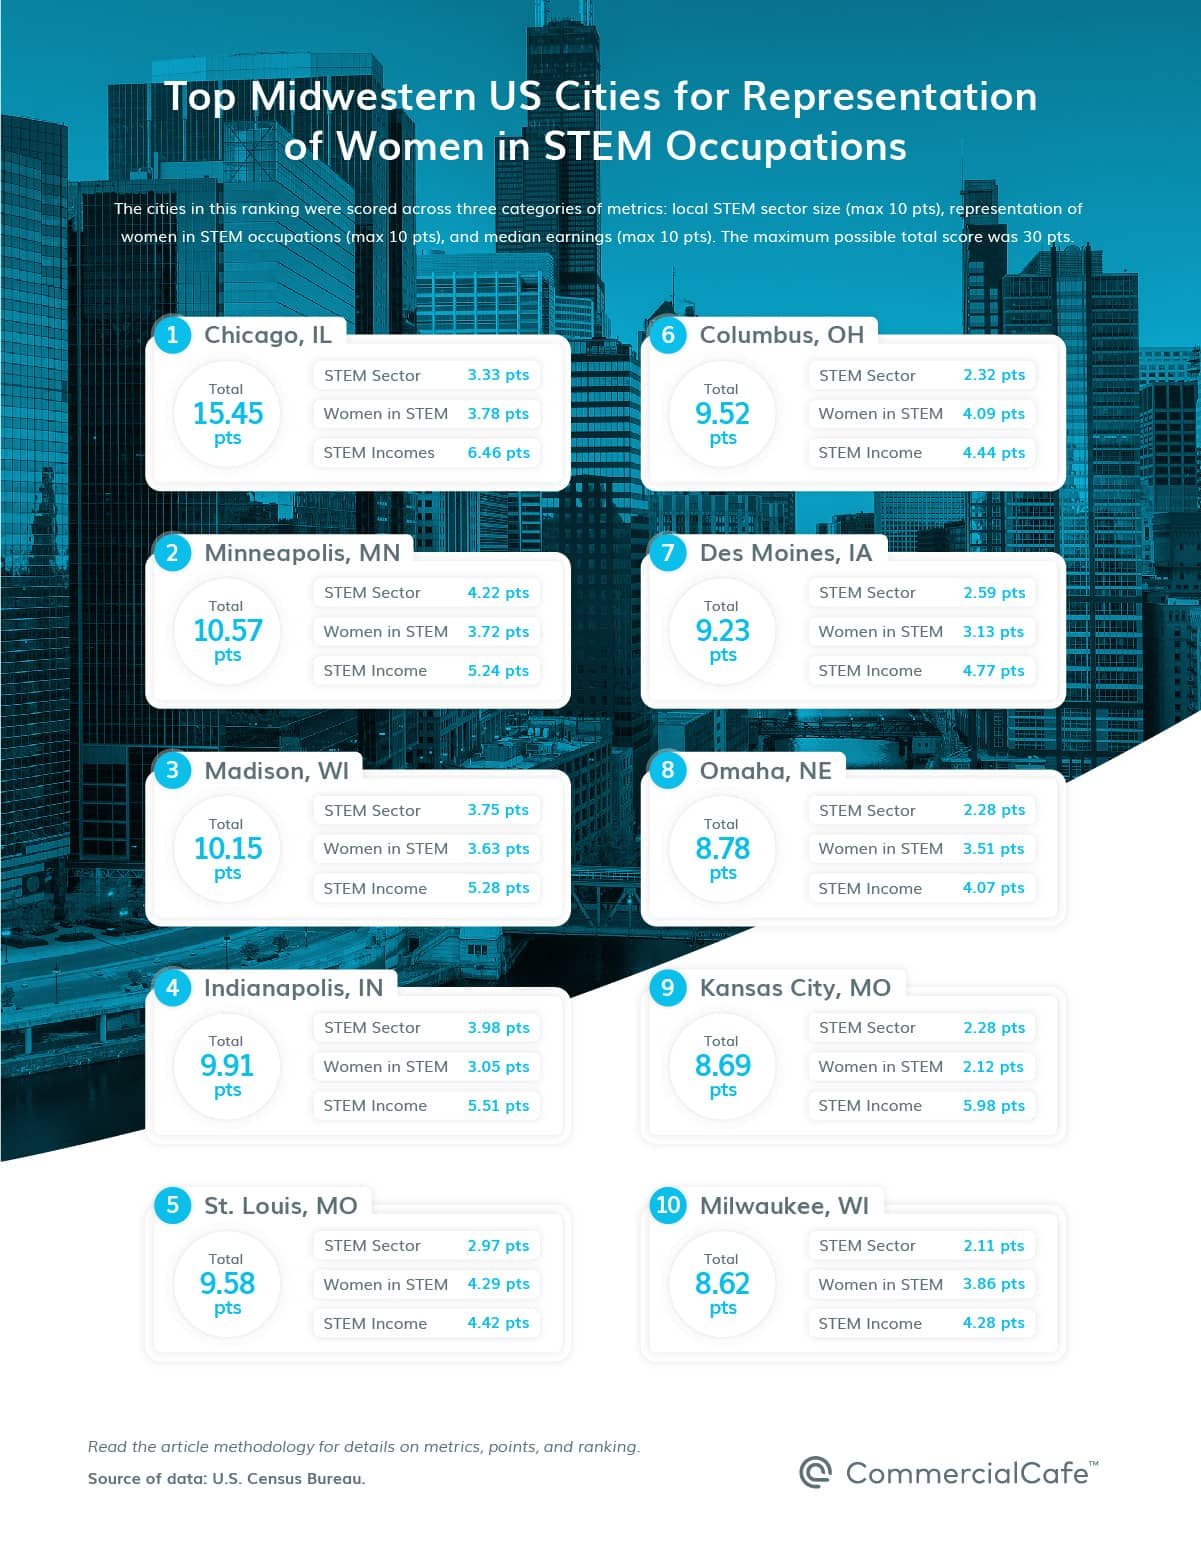 top 10 top midwest us cities by representation of women in stem 2021